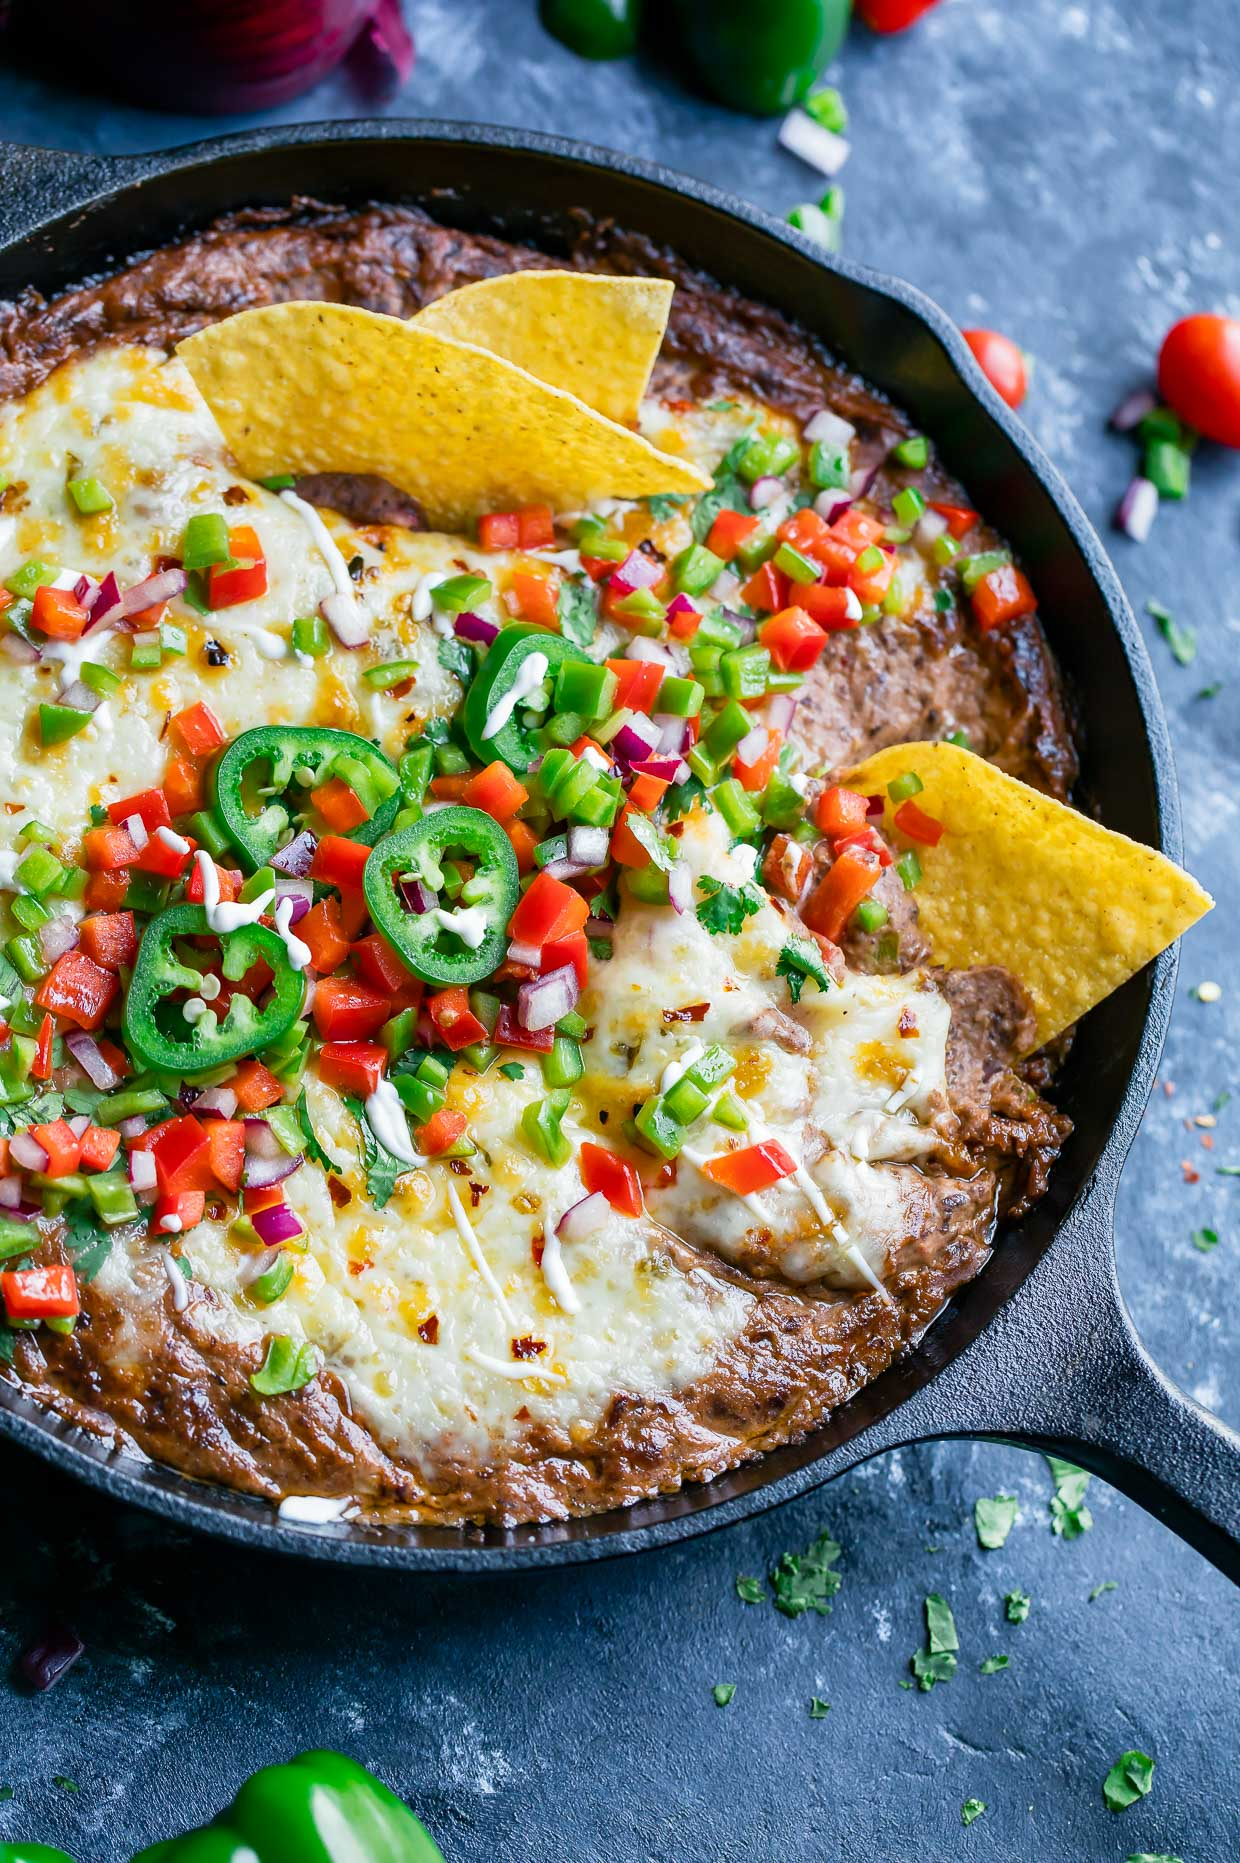 Instant Pot Black Bean Dip is a total breeze to throw together! No cans needed! Simply grab a bag of dried beans and get ready for a party-perfect vegetarian dip that's easy, make-ahead, and SO delicious!